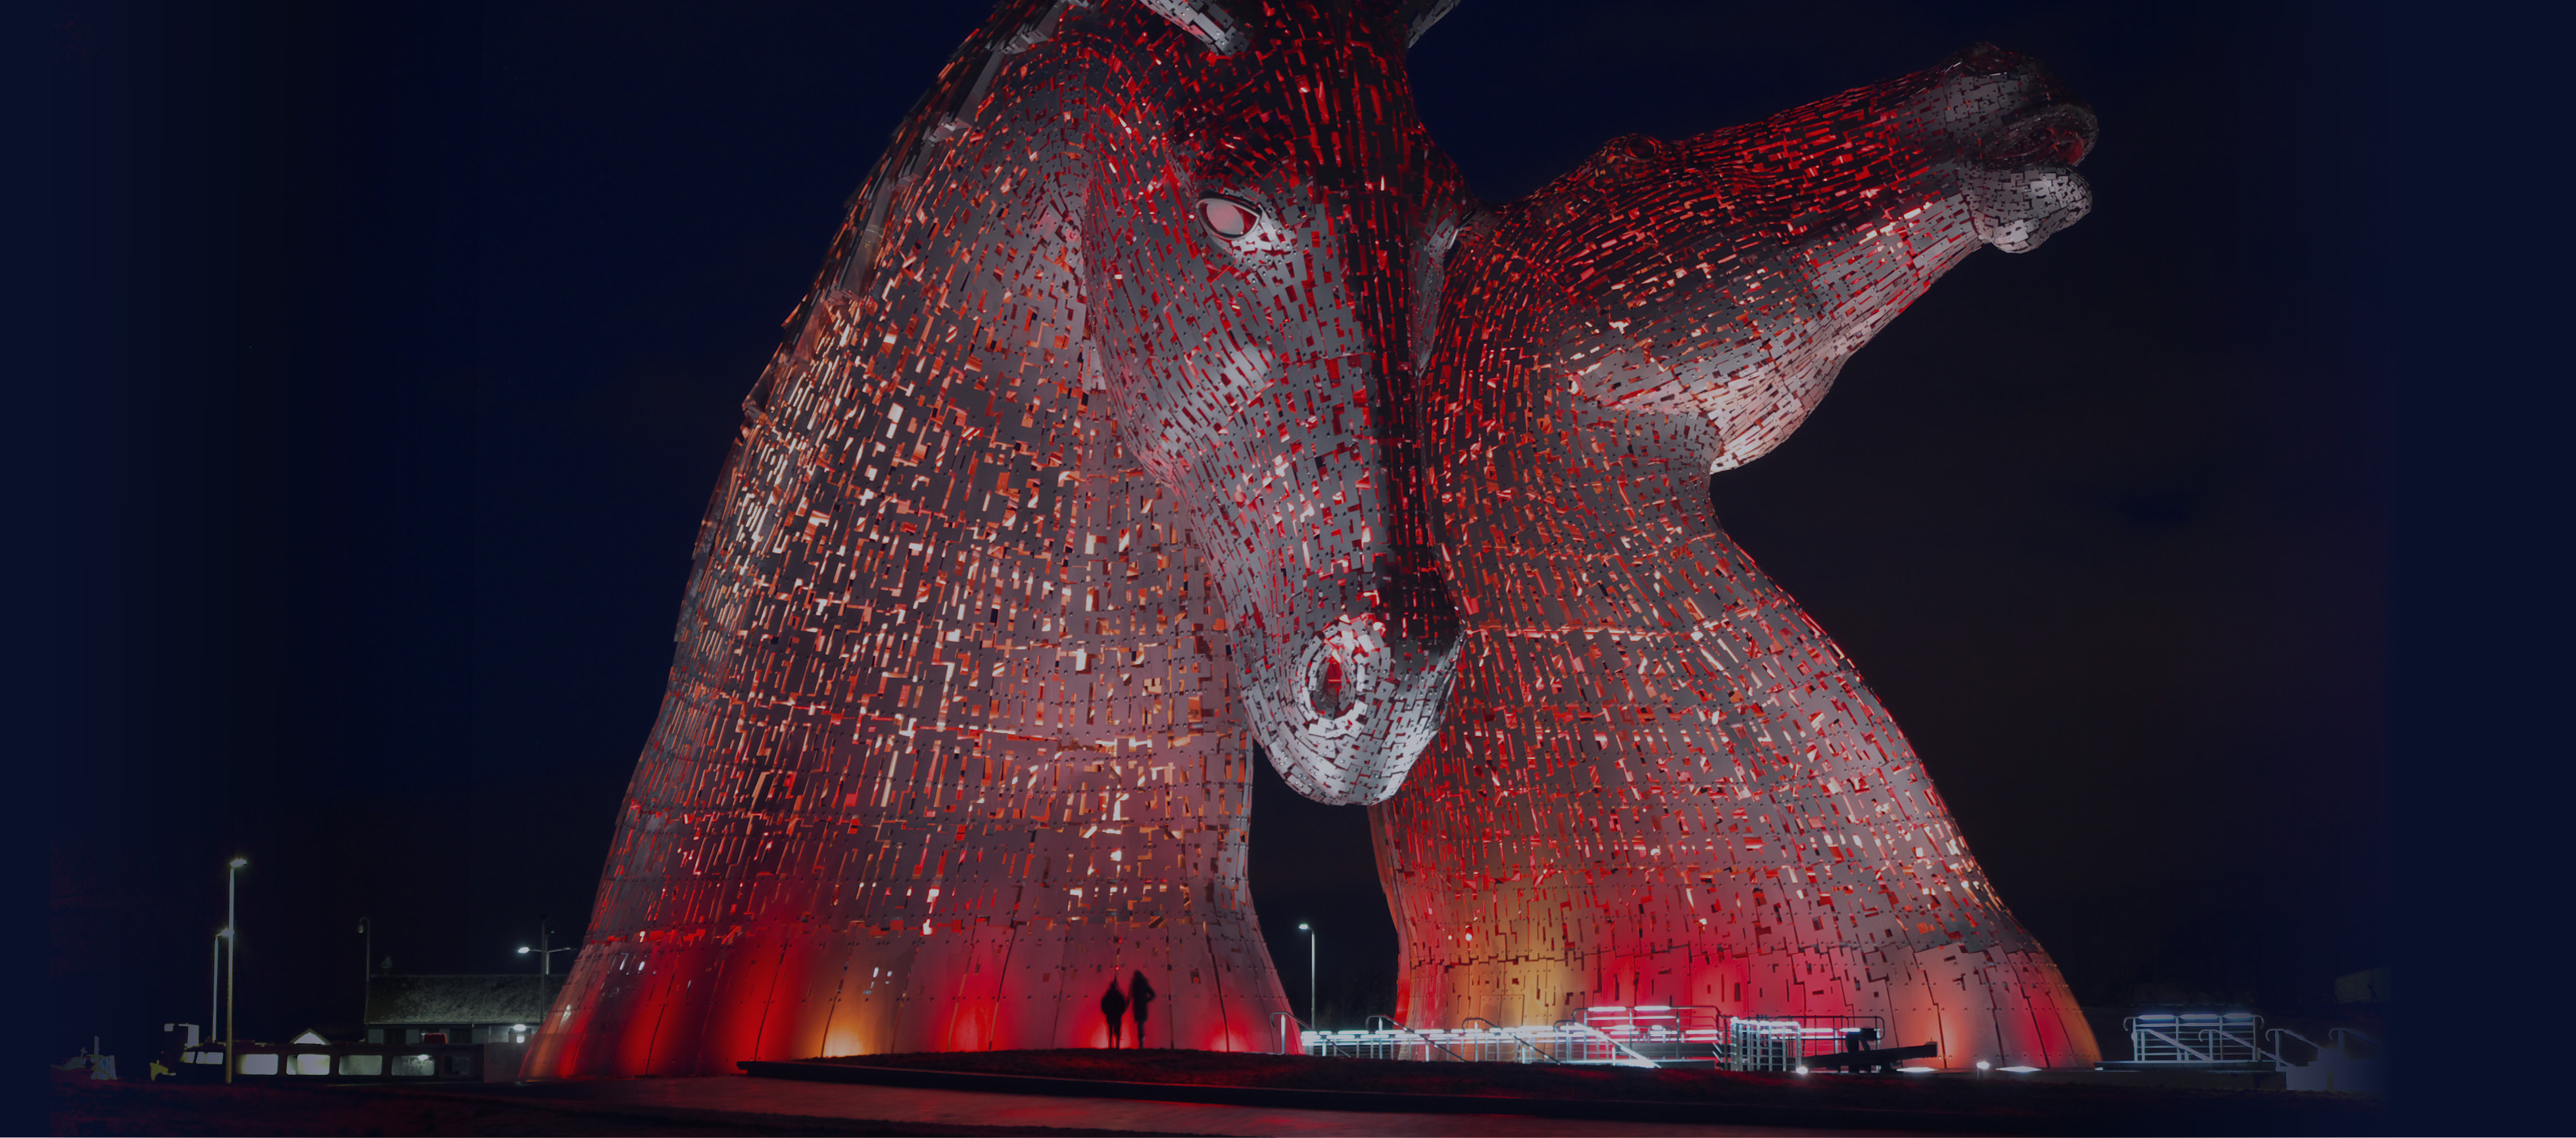 Helix Park & The Kelpies, 8th, 9th & 10th November